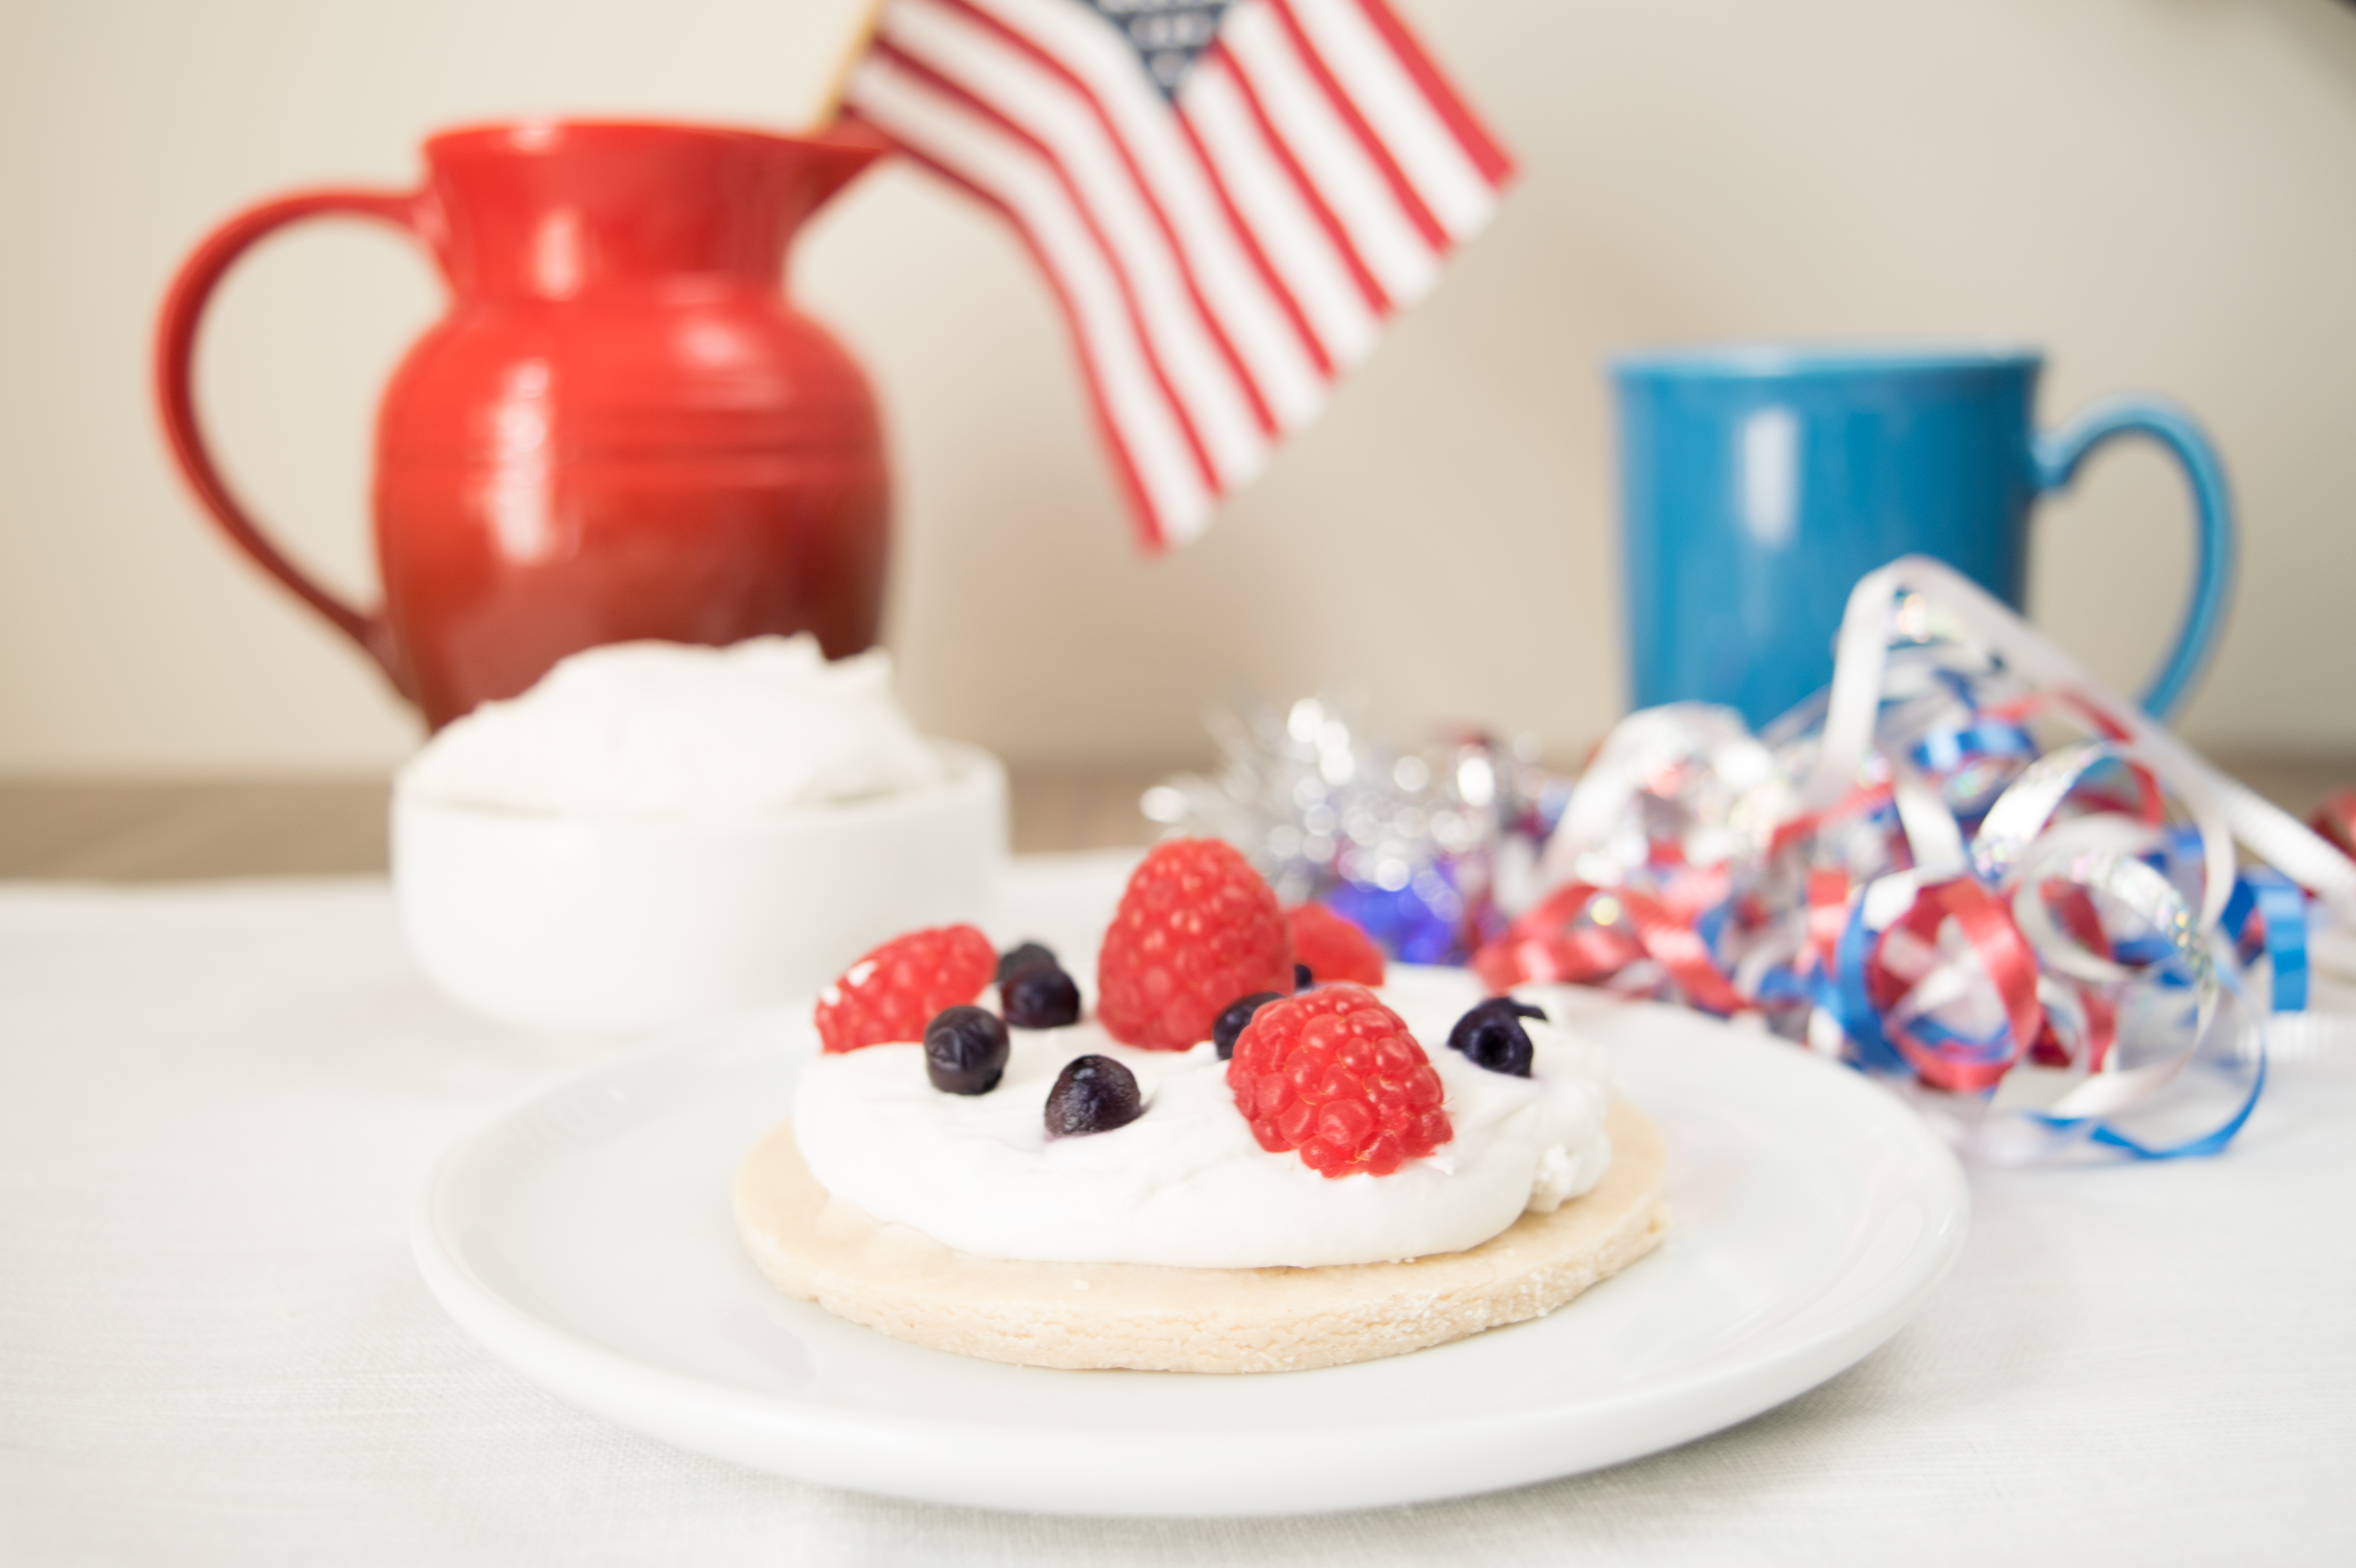 AIP 4th of July Berry Sugar Cookie Pies (without sugar!)